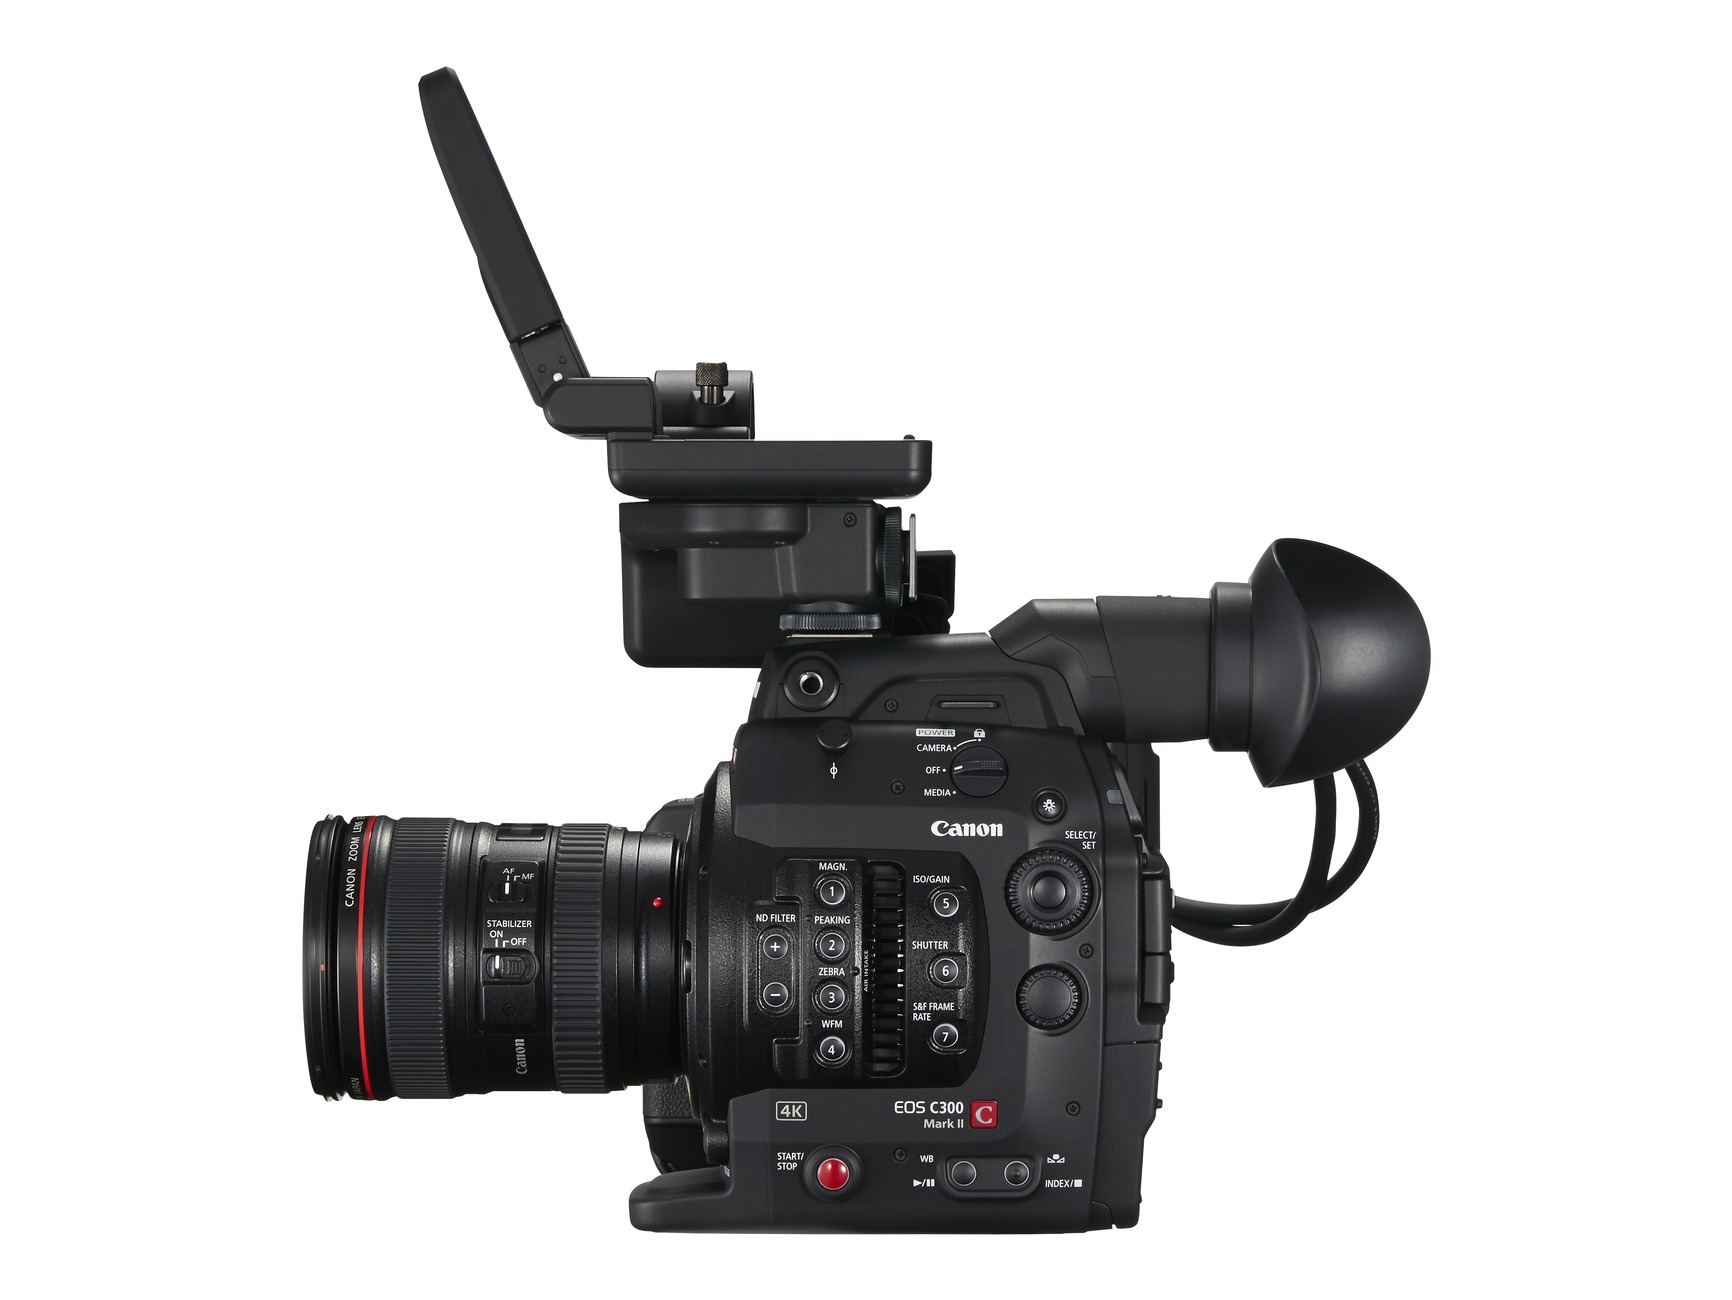 New Canon EOS C300 Mark II left with LCD up